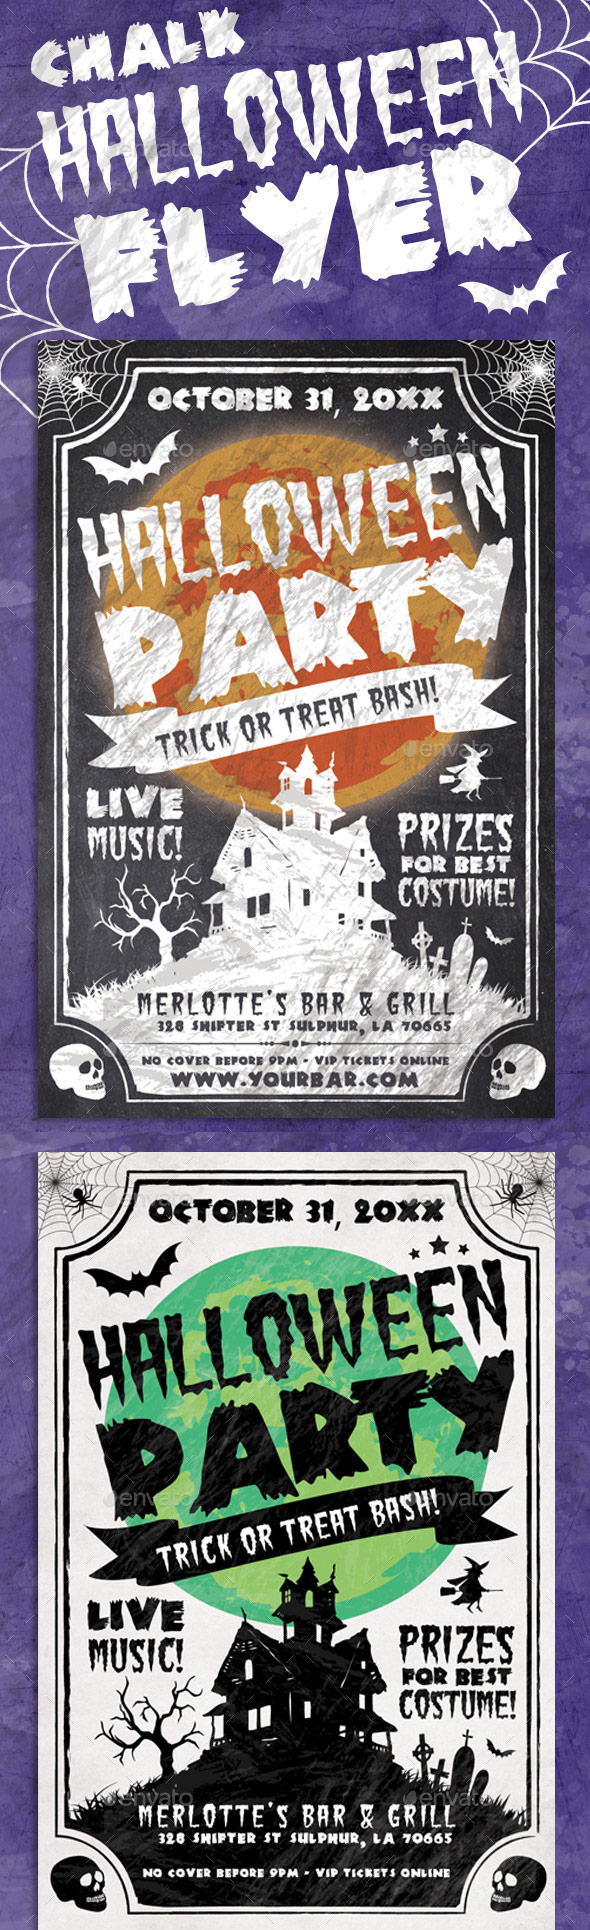 Chalk-Halloween-Flyer